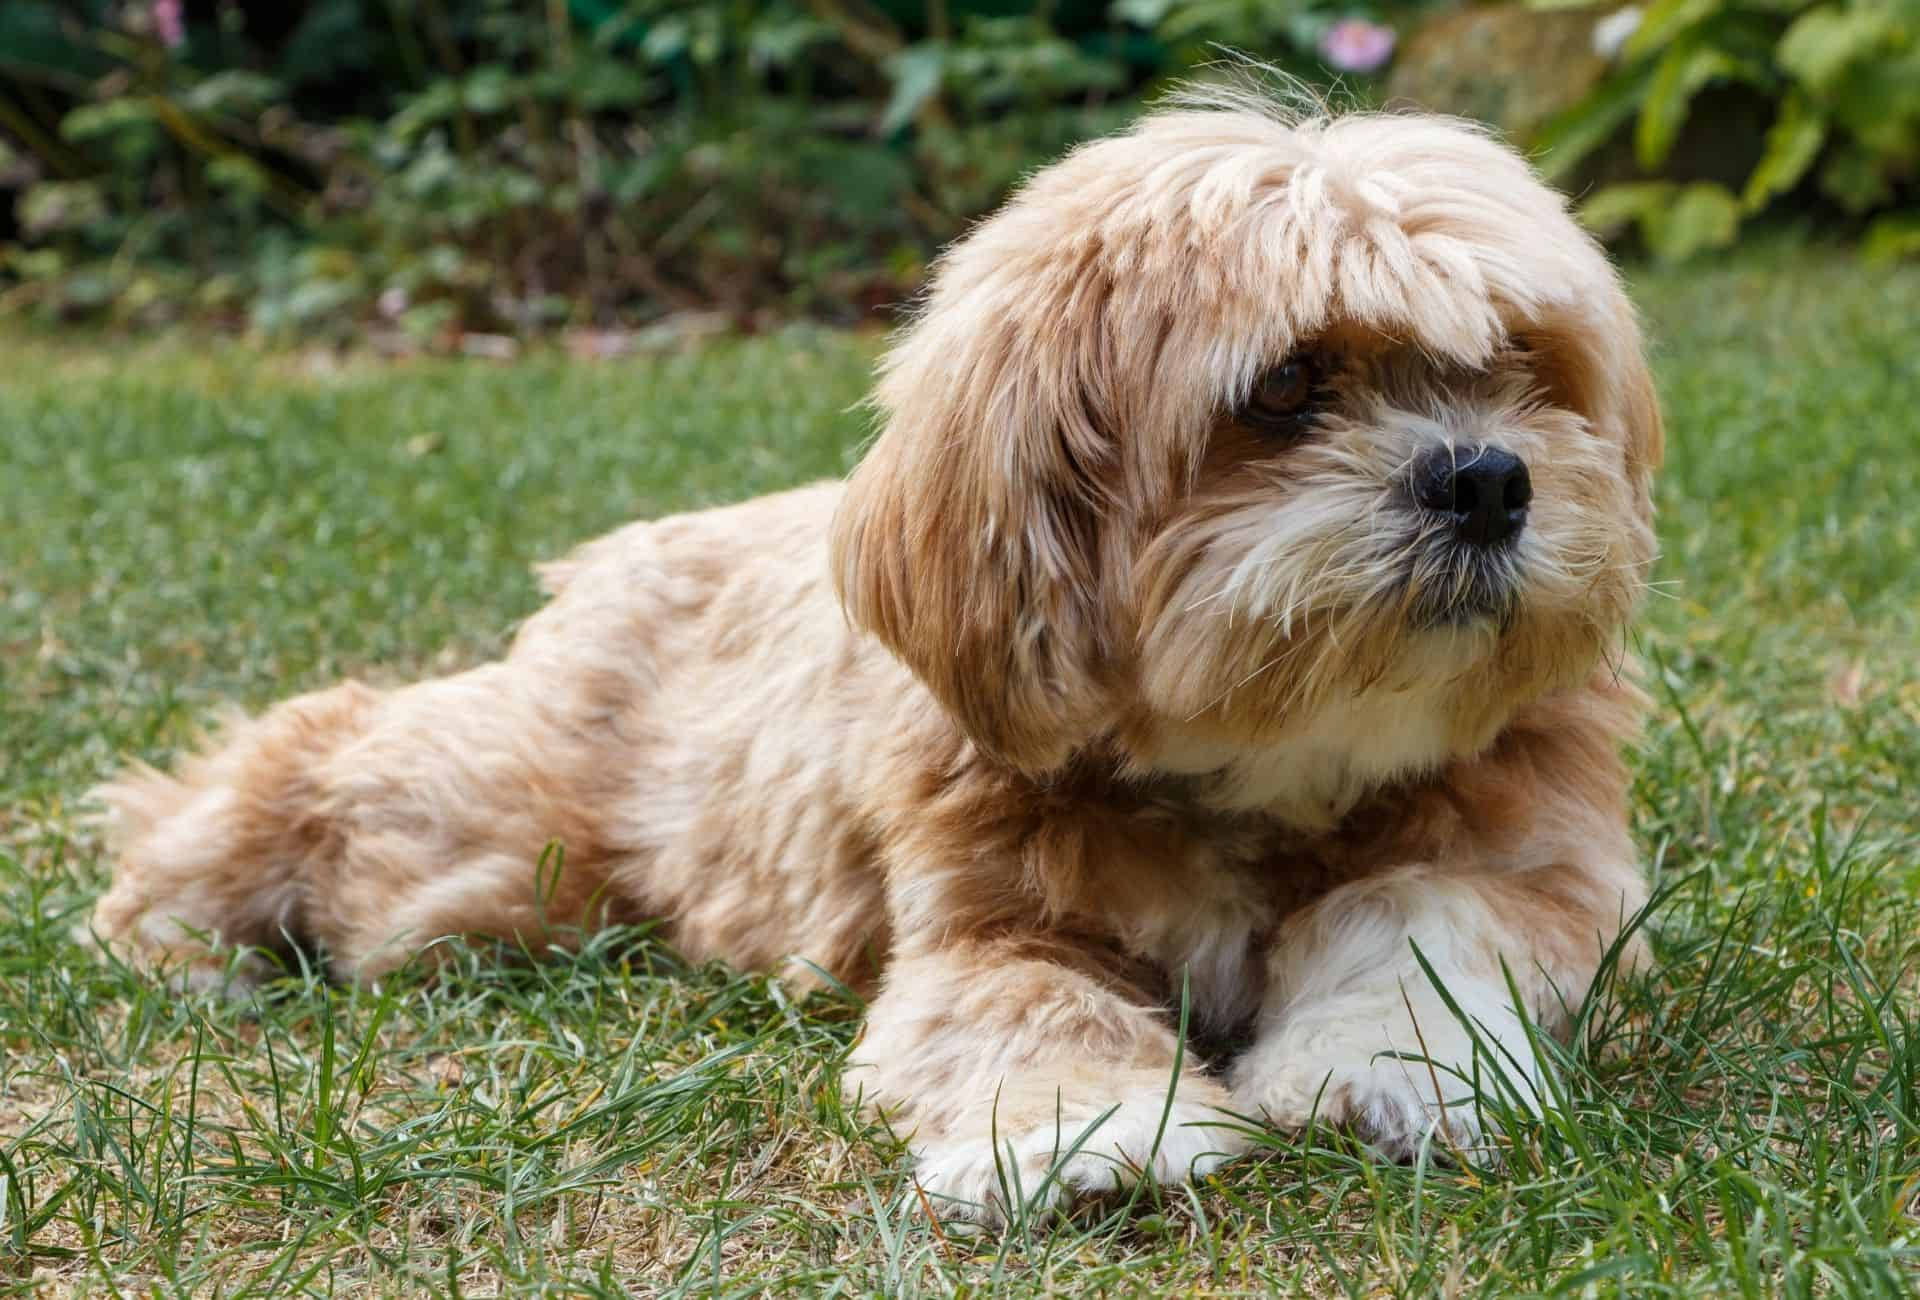 Lhasa Apso with long fur laying on the ground.